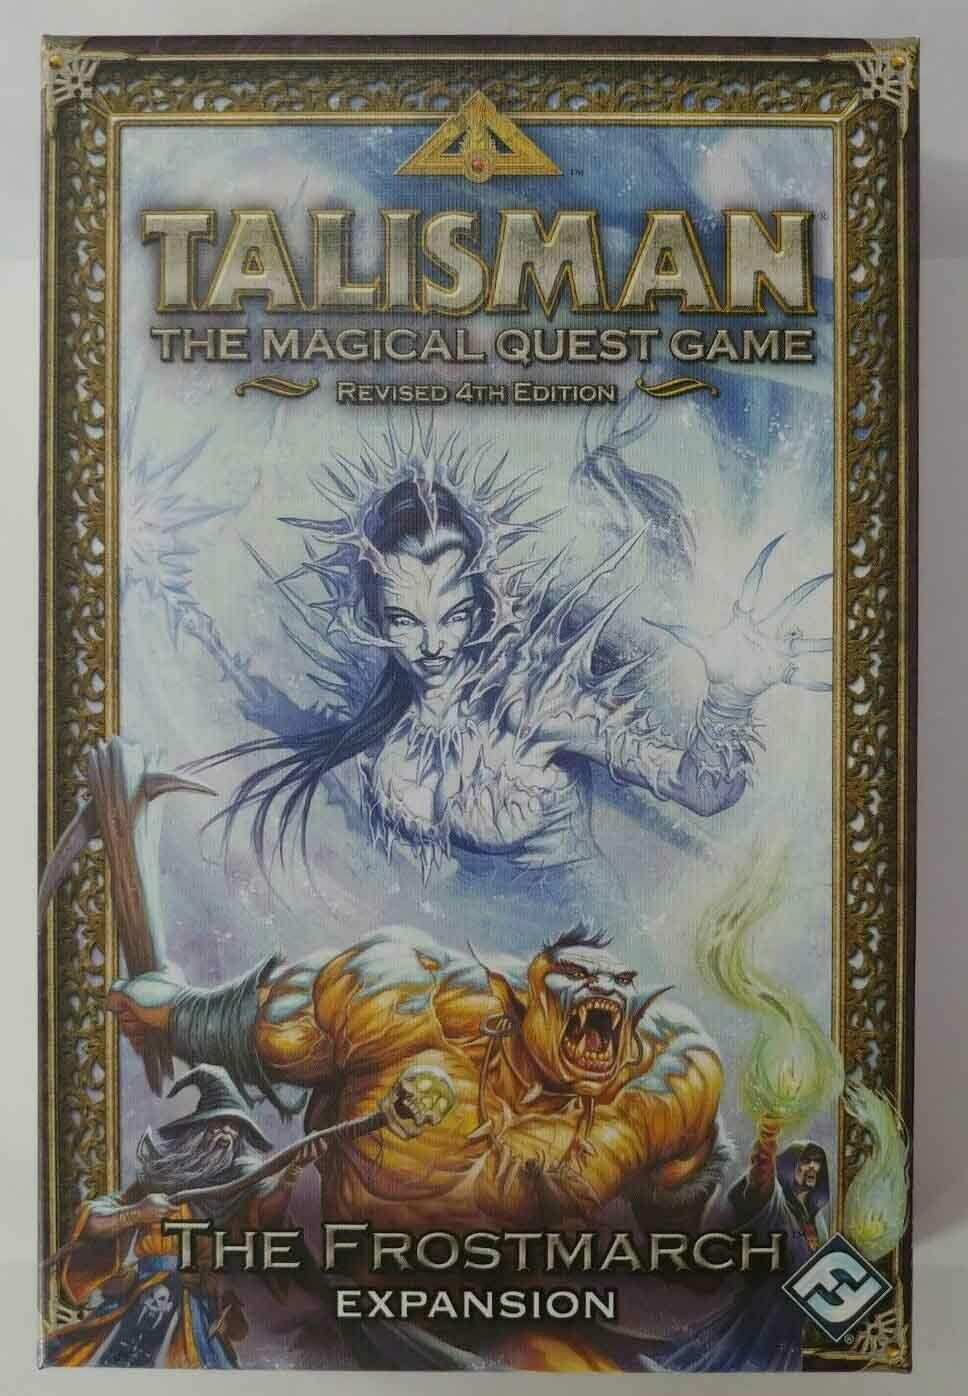 Talisman The Frostmarch Expansion by Fantasy Flight Games